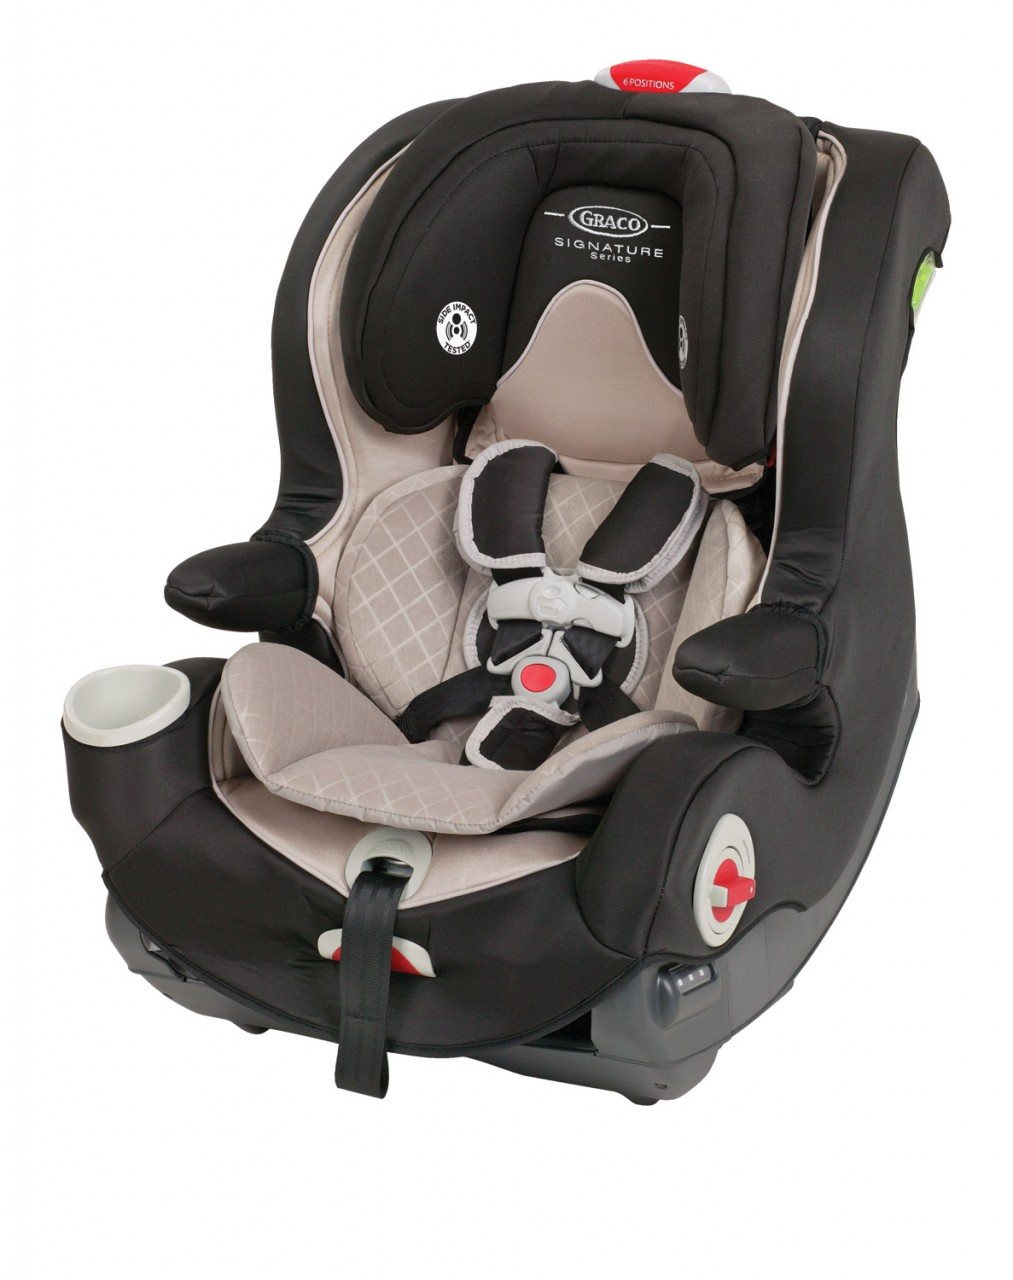 Carseatblog The Most Trusted Source For Car Seat Reviews border=